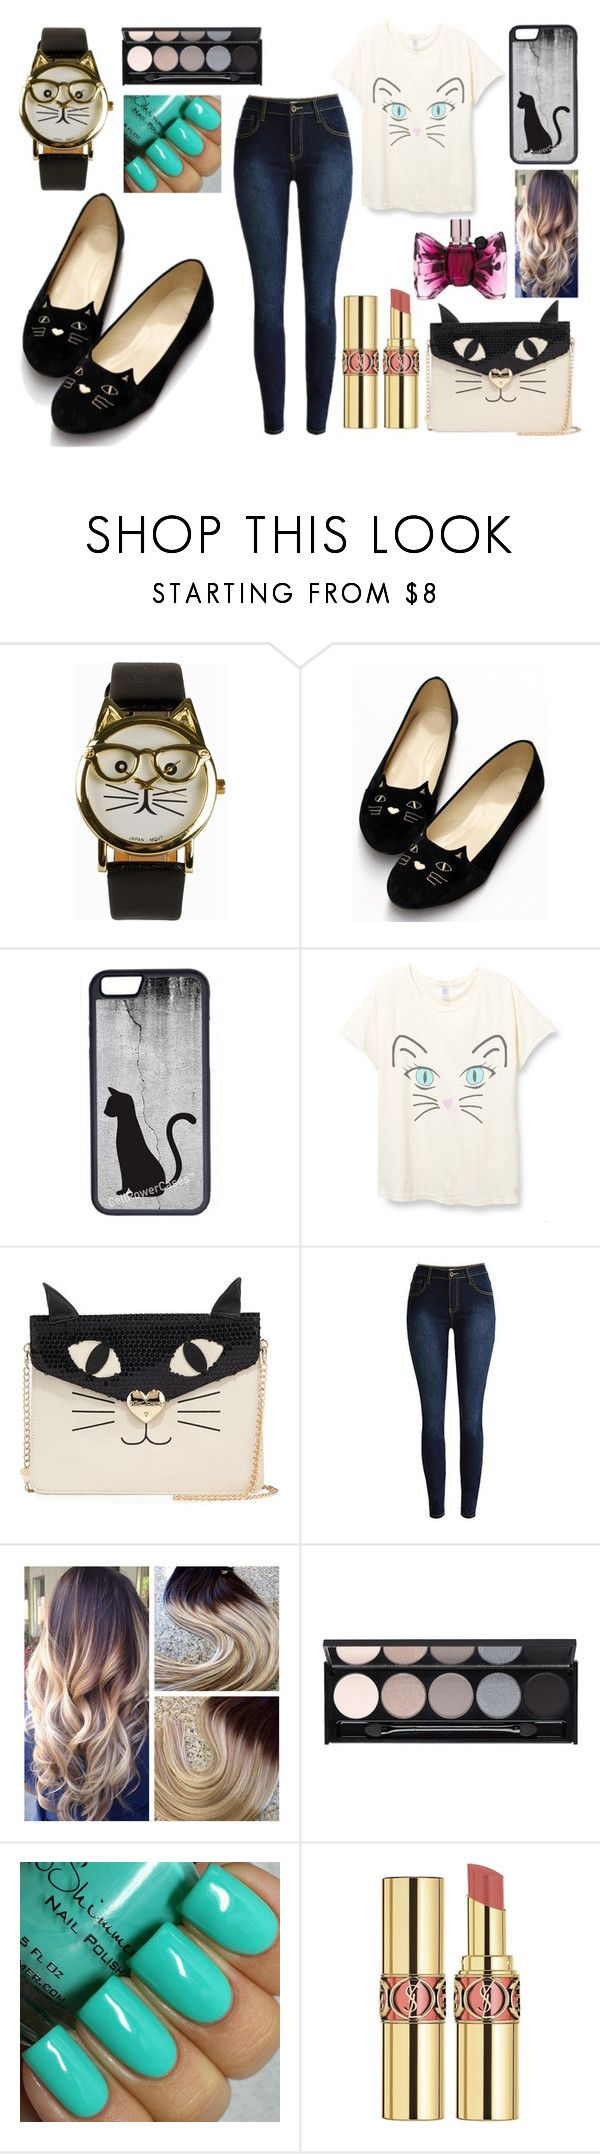 """""""Cat Crazy"""" by penelopejohnson24 on Polyvore featuring JFR, CellPowerCases, Betsey Johnson, Witchery, Yves Saint Laurent, Viktor & Rolf, women's clothing, women's fashion, women and female"""